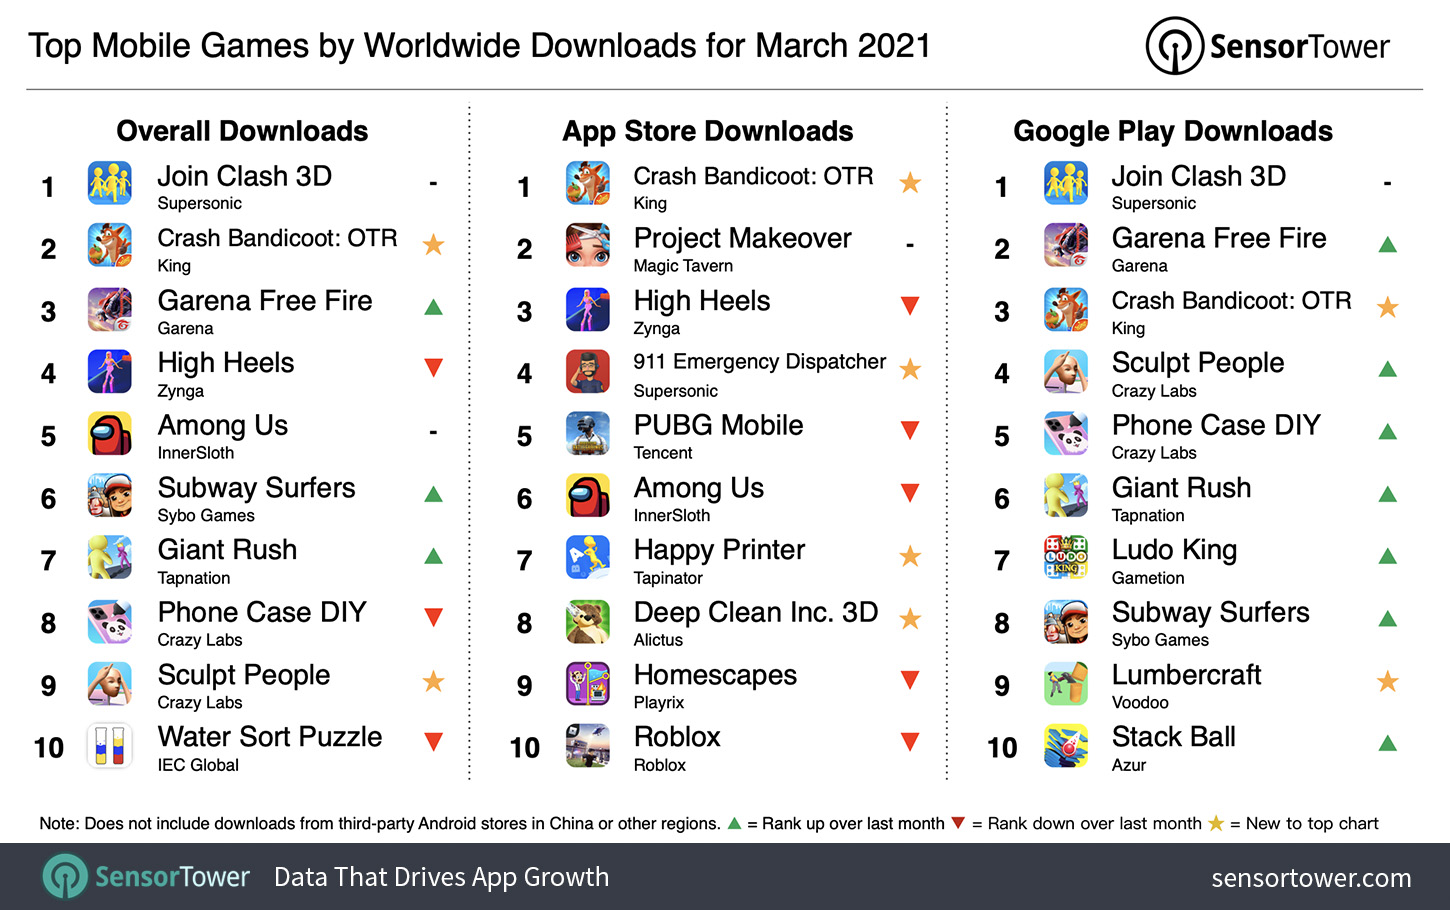 Top Mobile Games Worldwide for March 2021 by Downloads